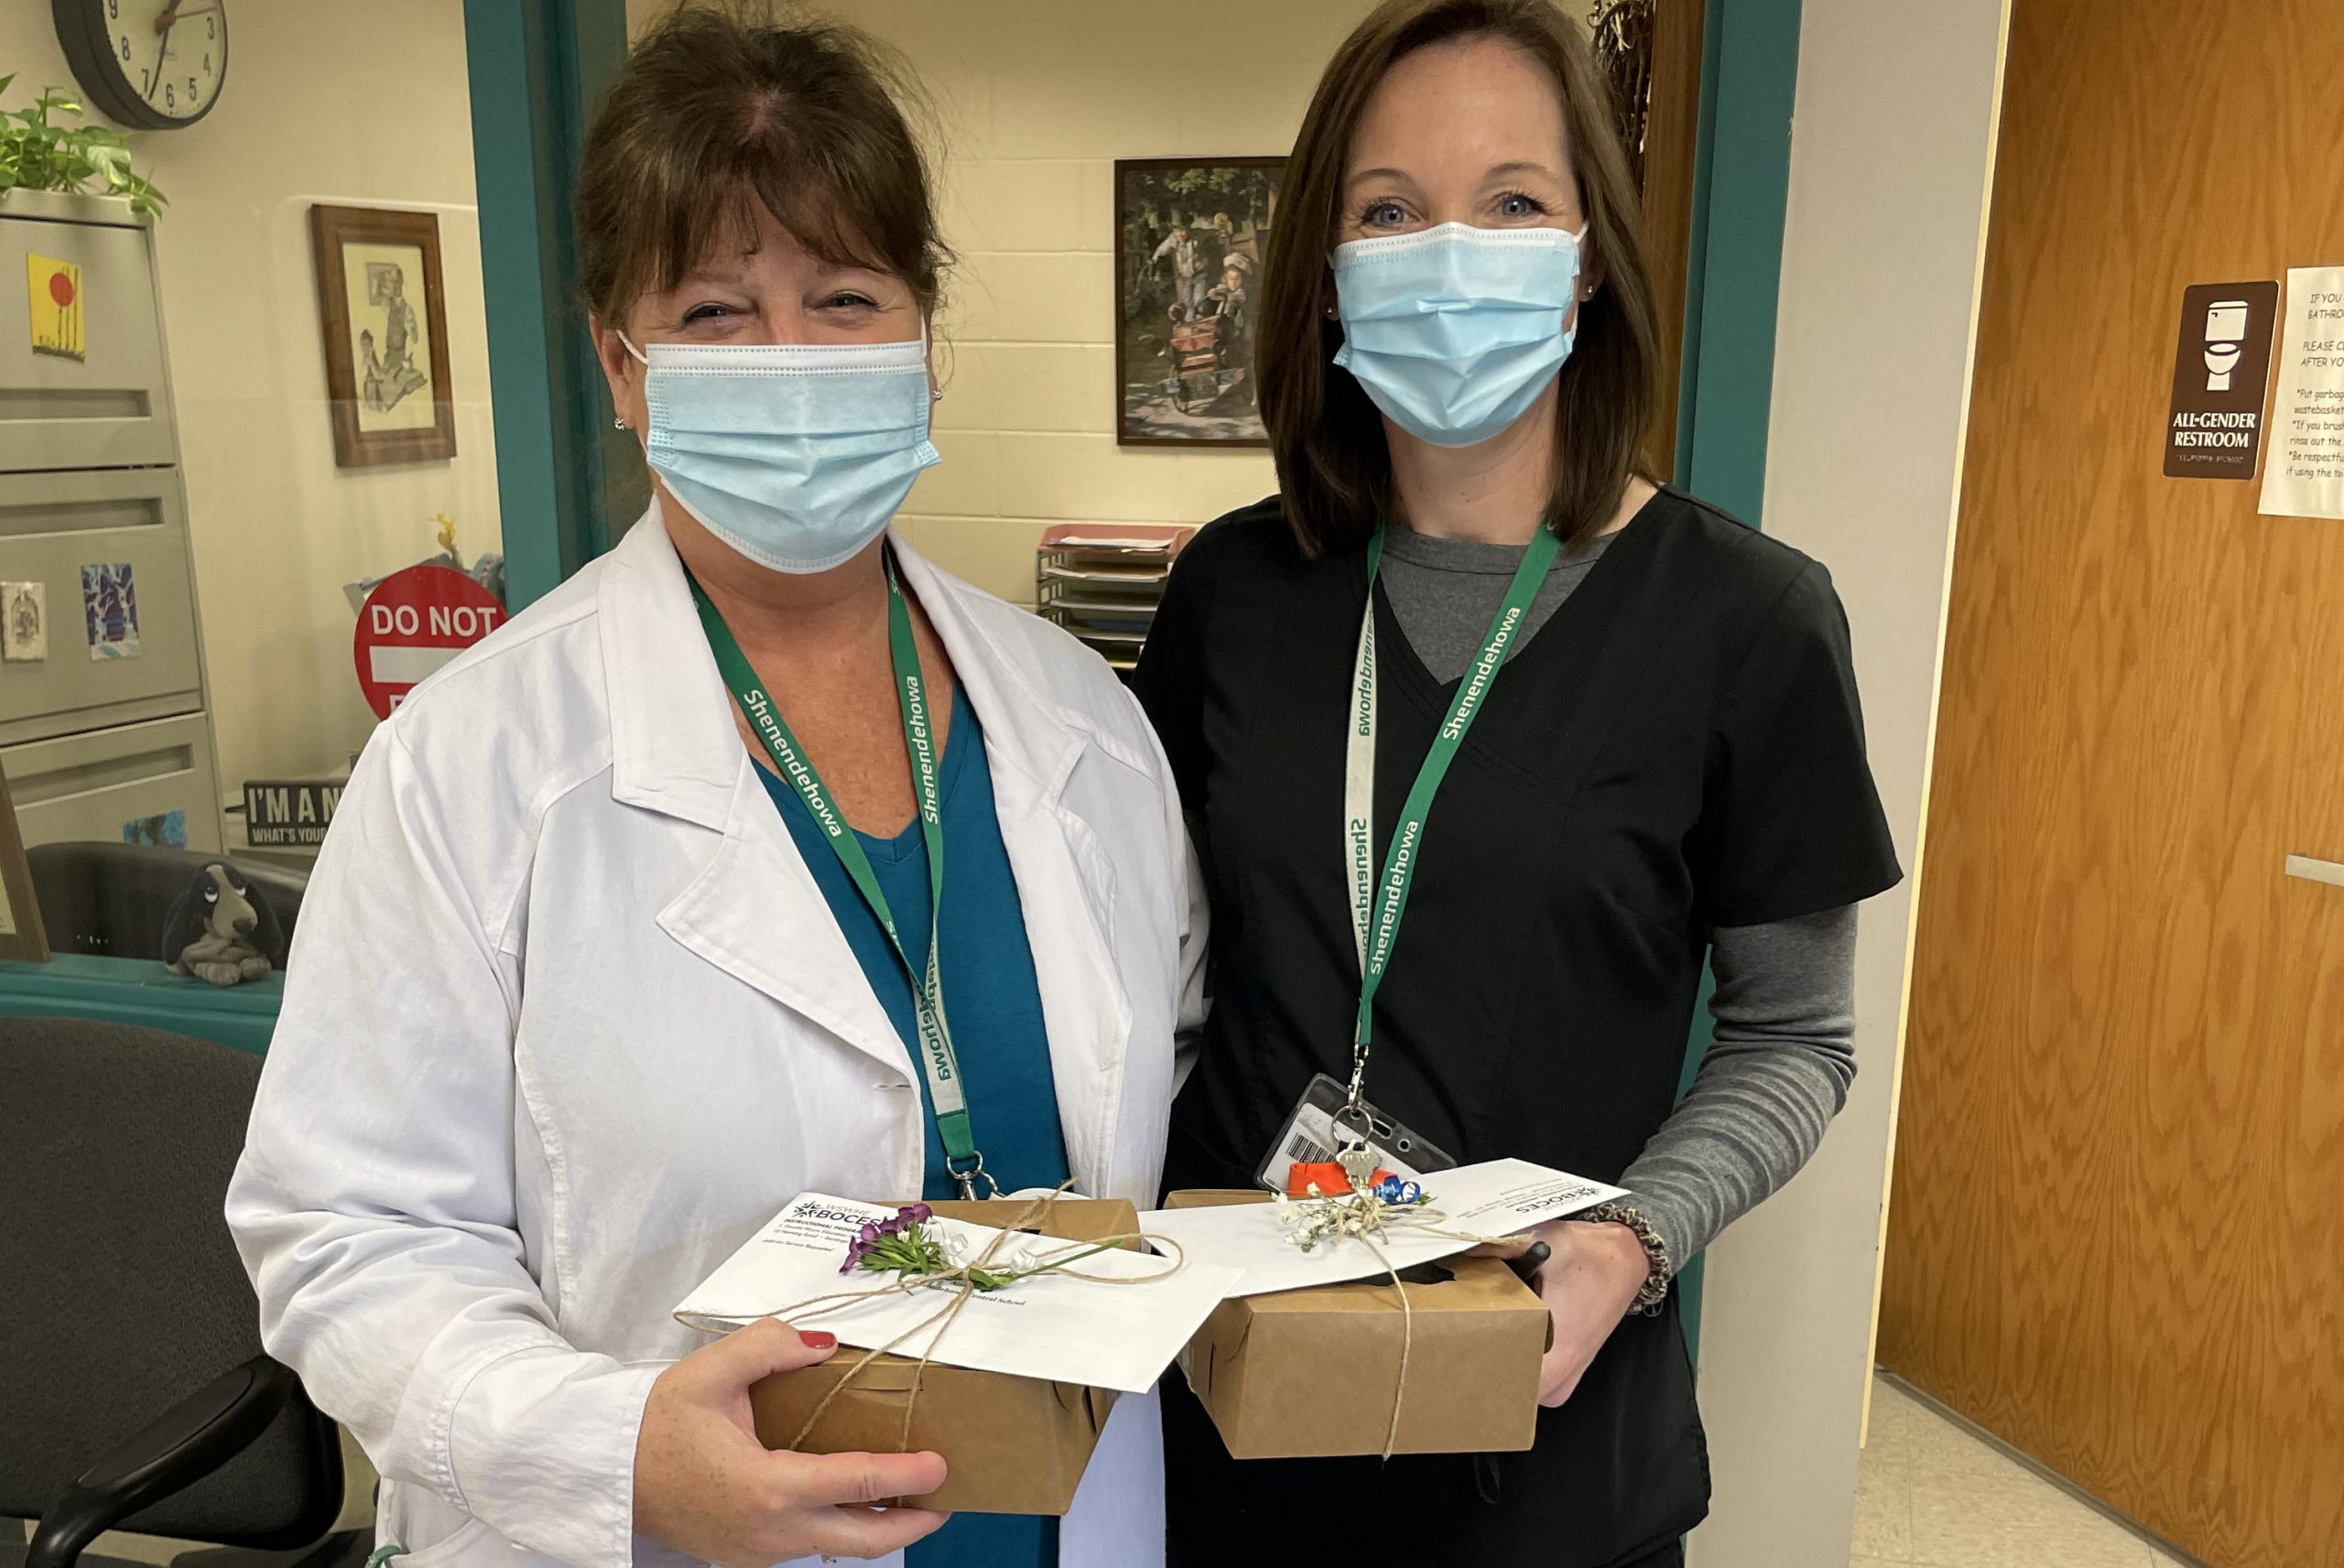 Shenendehowa nurses received a token of appreciation for their help with the Saratoga County Department of Health vaccination pods for adults. The Shenendehowa nurses, were a critical component to making this happen.